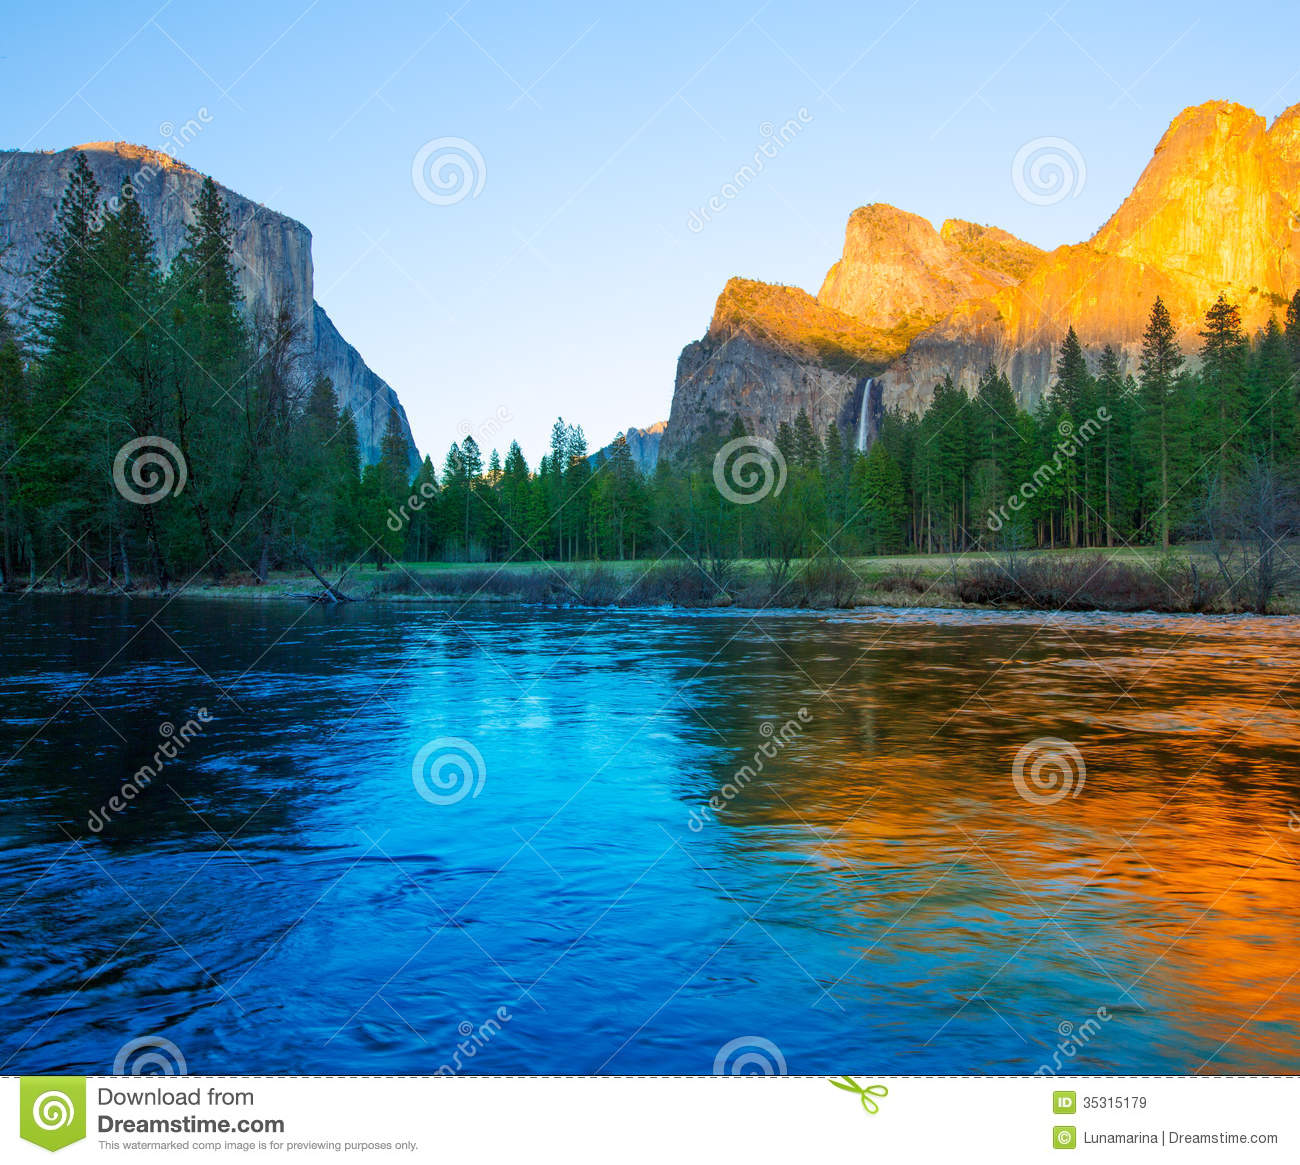 Merced River clipart #5, Download drawings